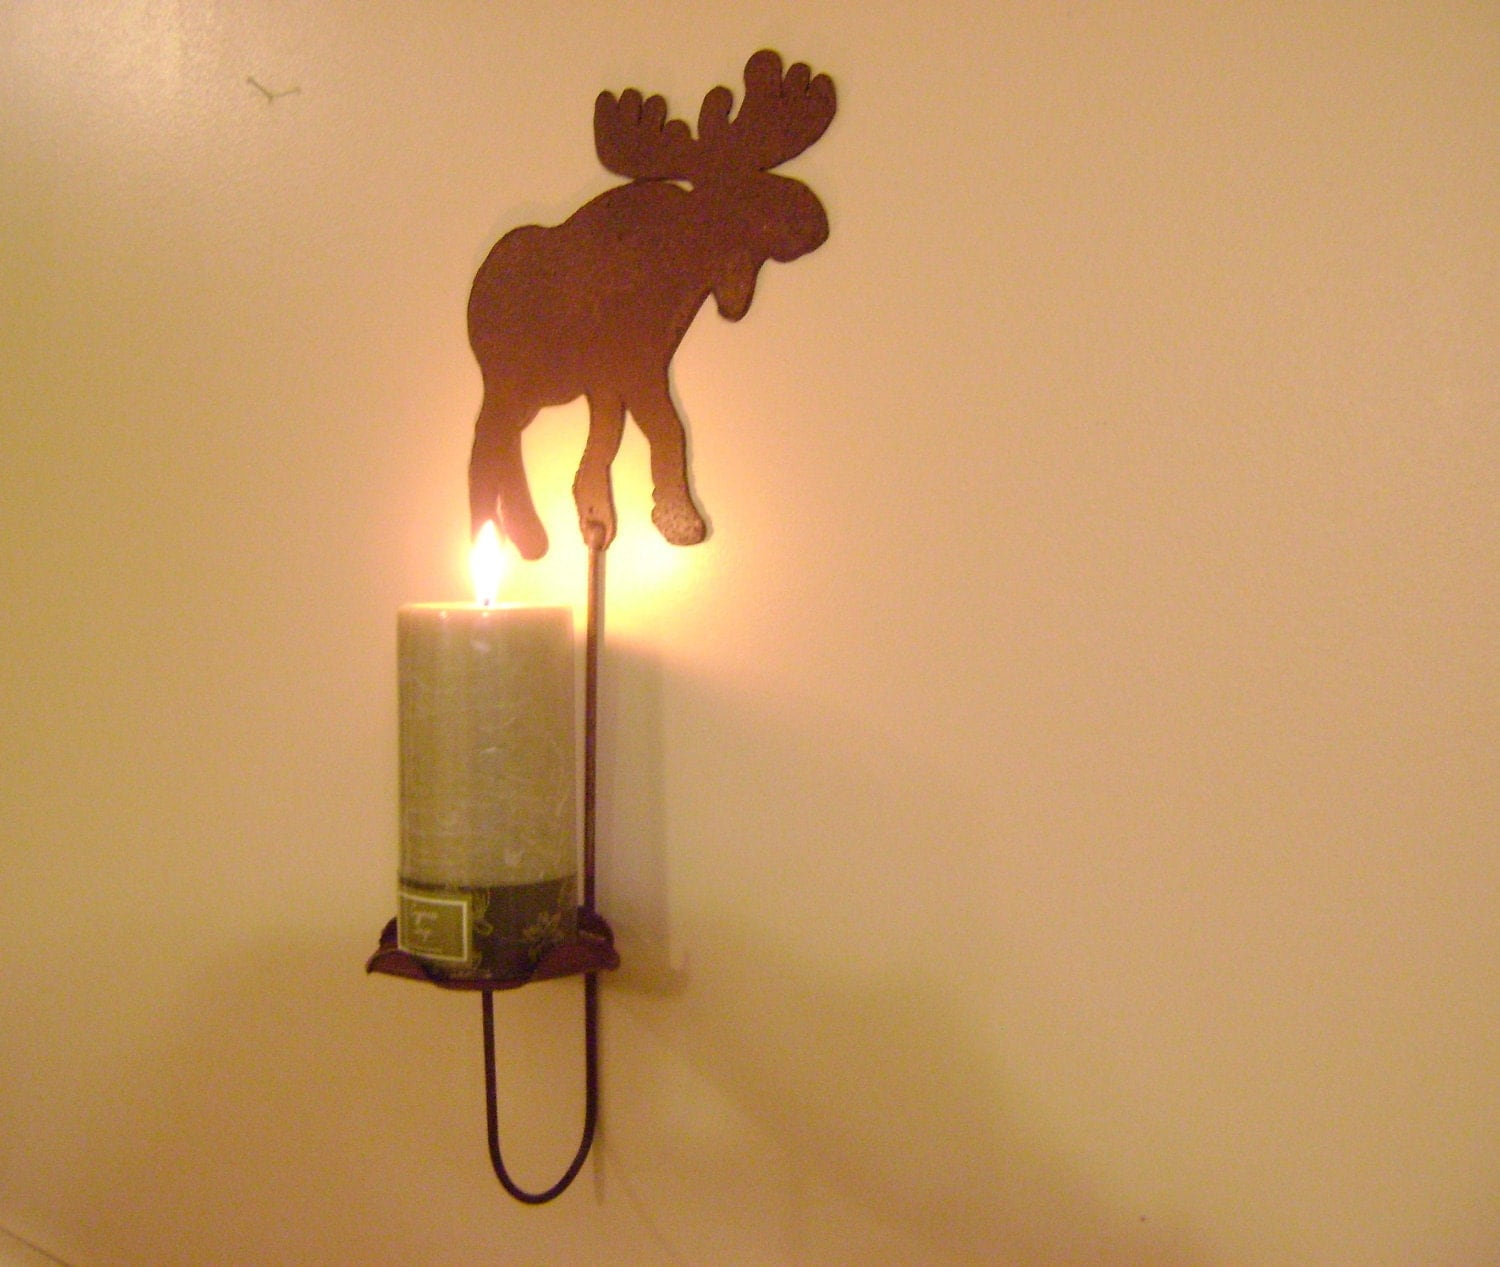 Primitive Wall Sconces Candles : Primitive Metal Moose Wall Sconce Candle by northwindmetalart